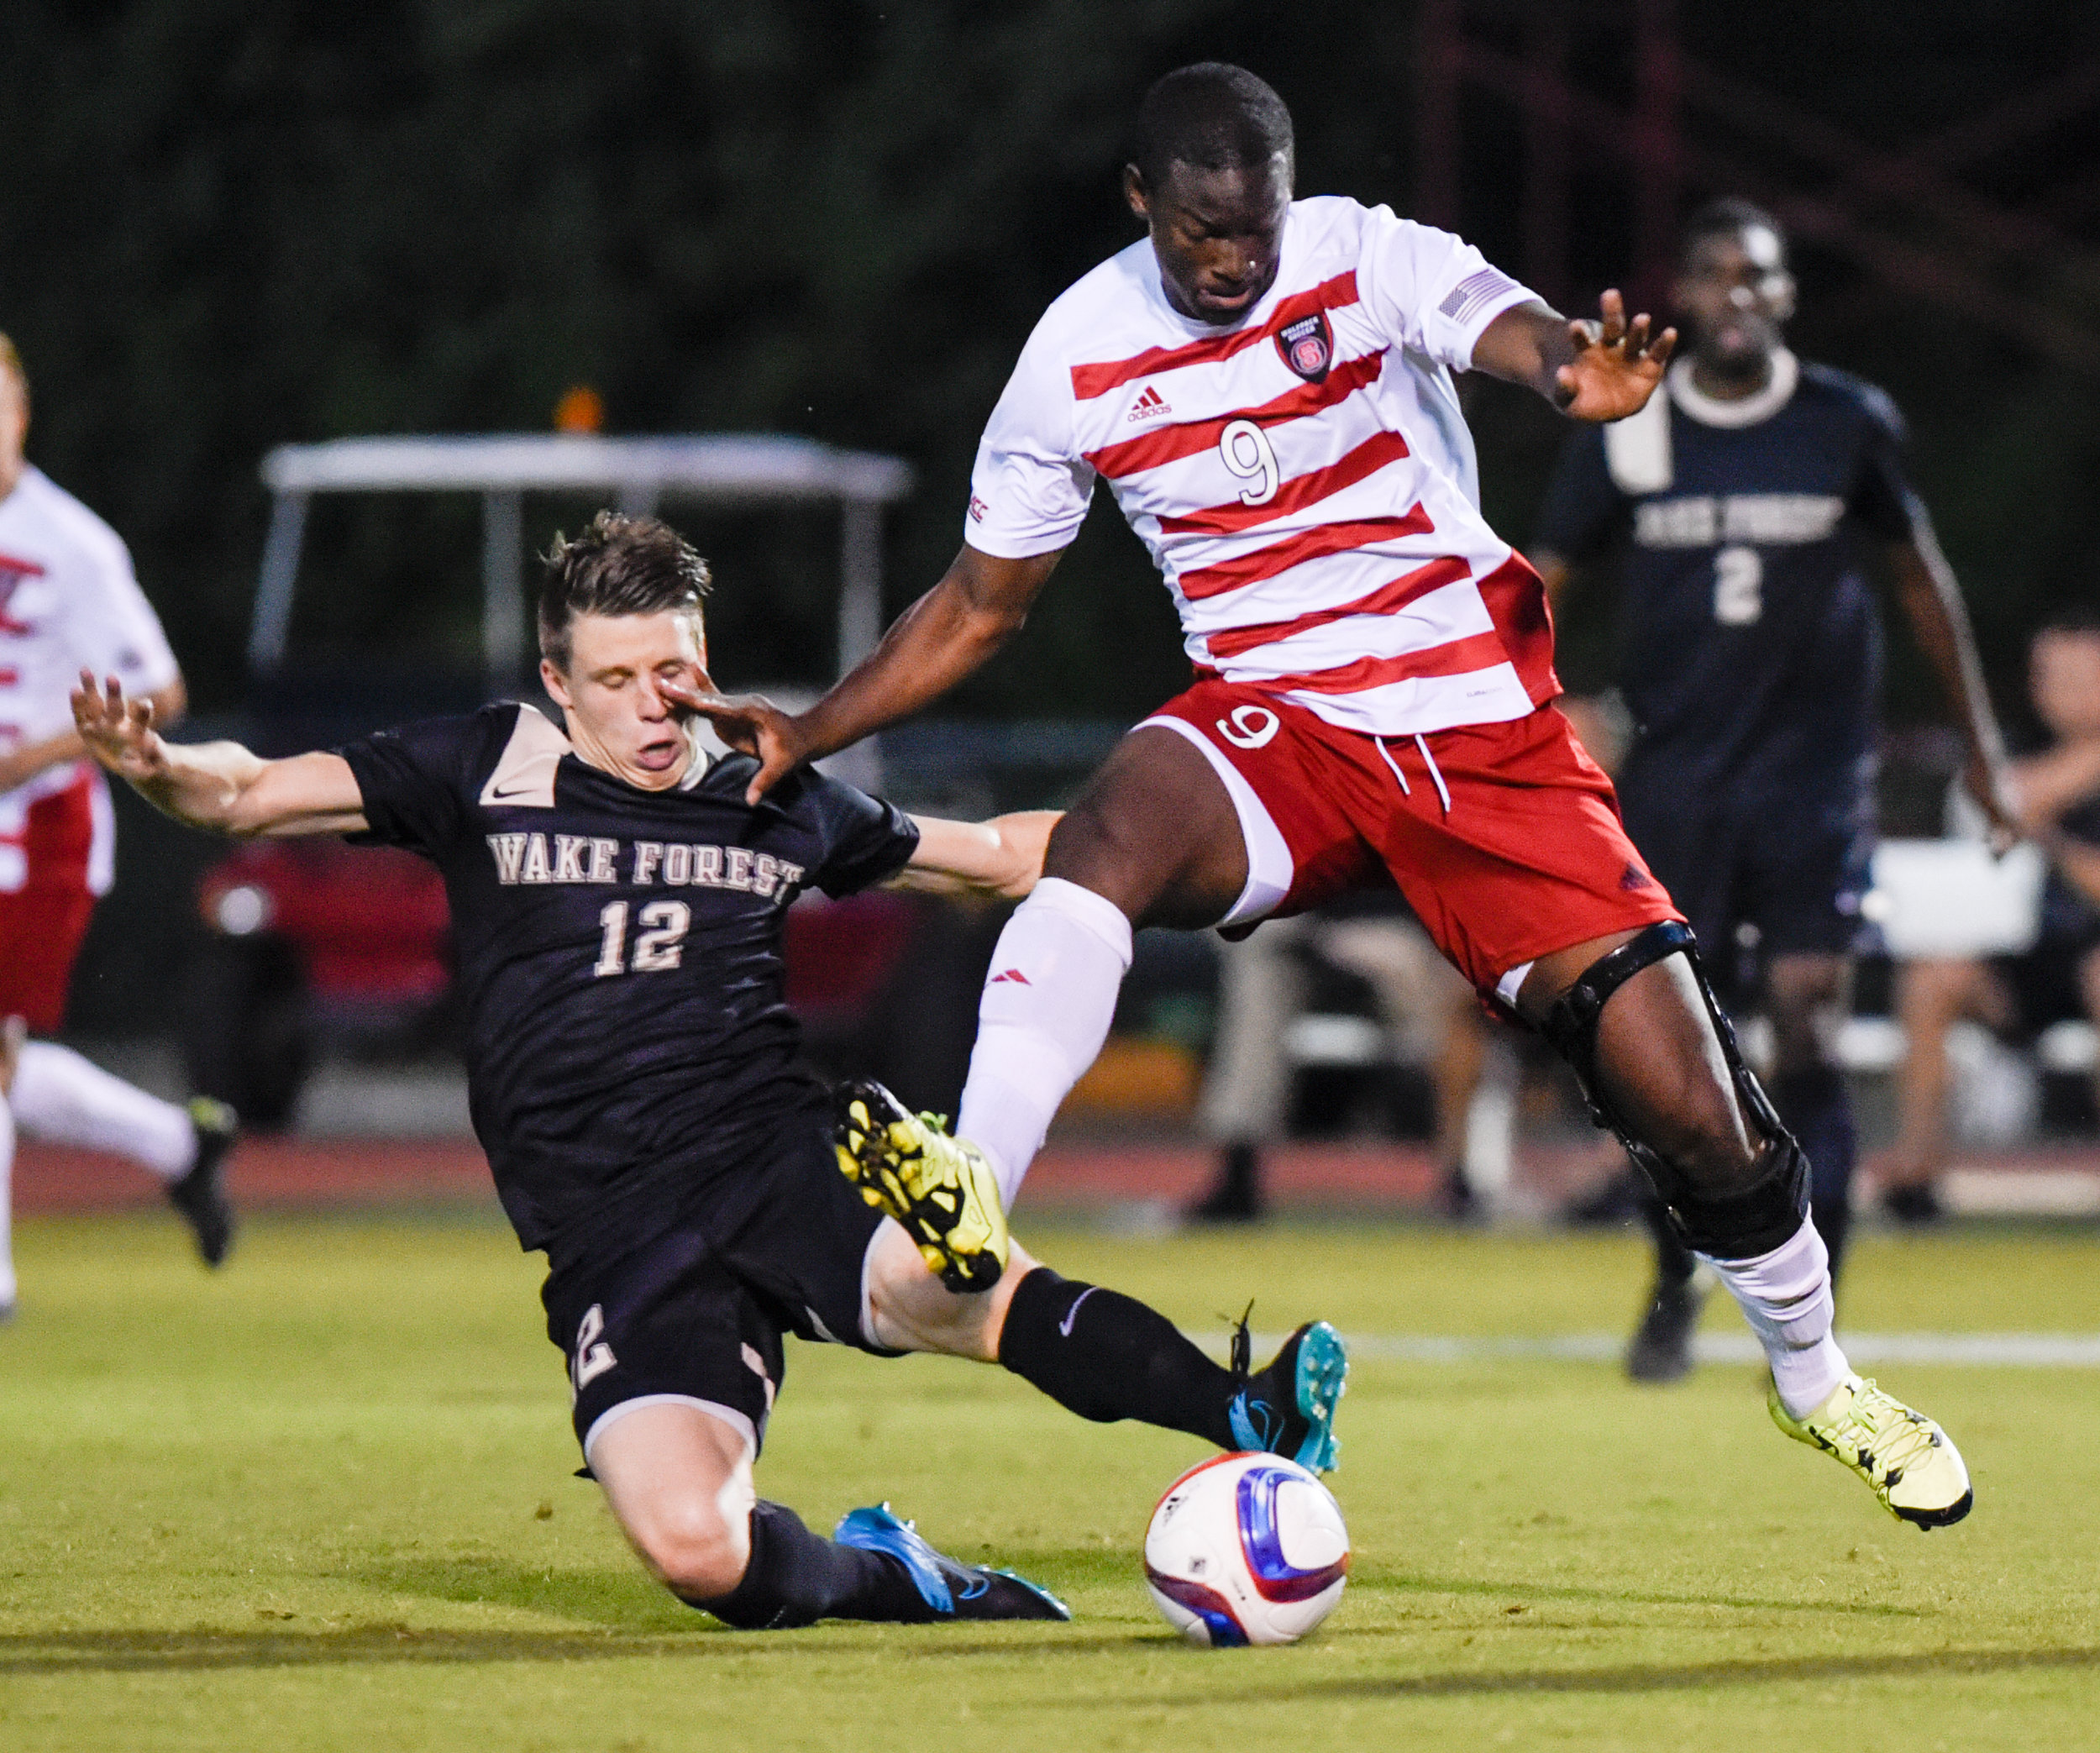 NC State's Ade Taiwo (right, 2) , battles against Wake Forest's Brad Dunwell (left 12), on October 9, 2015